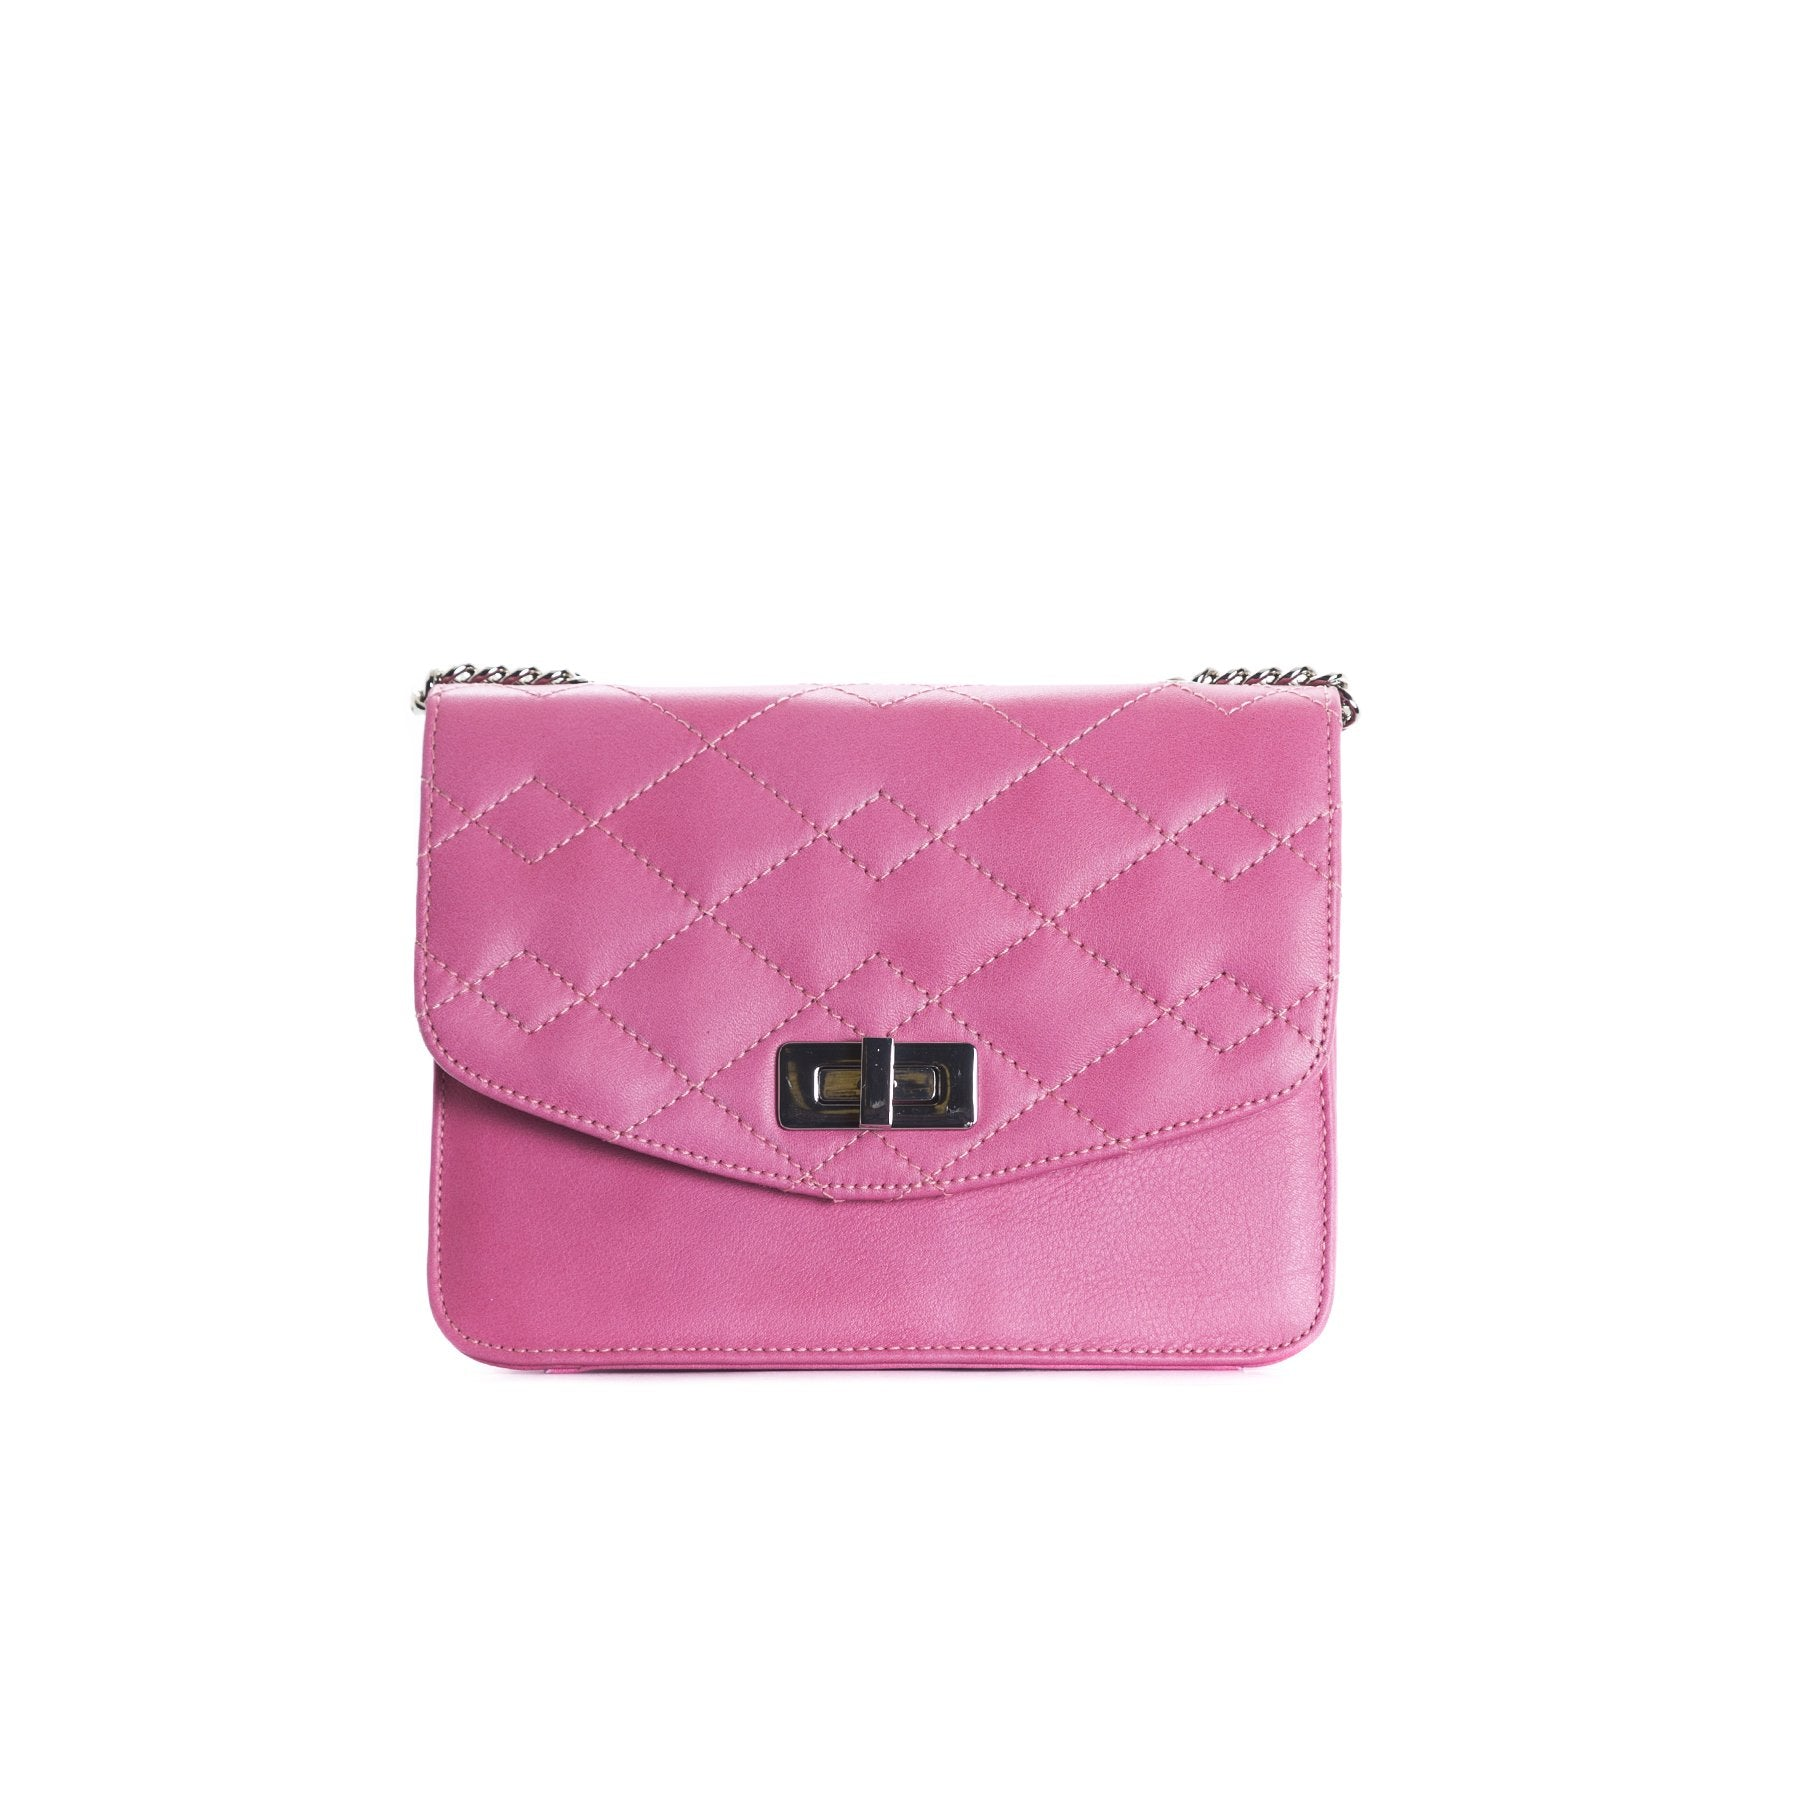 Joelle Fuchsia Leather Shoulder Bags